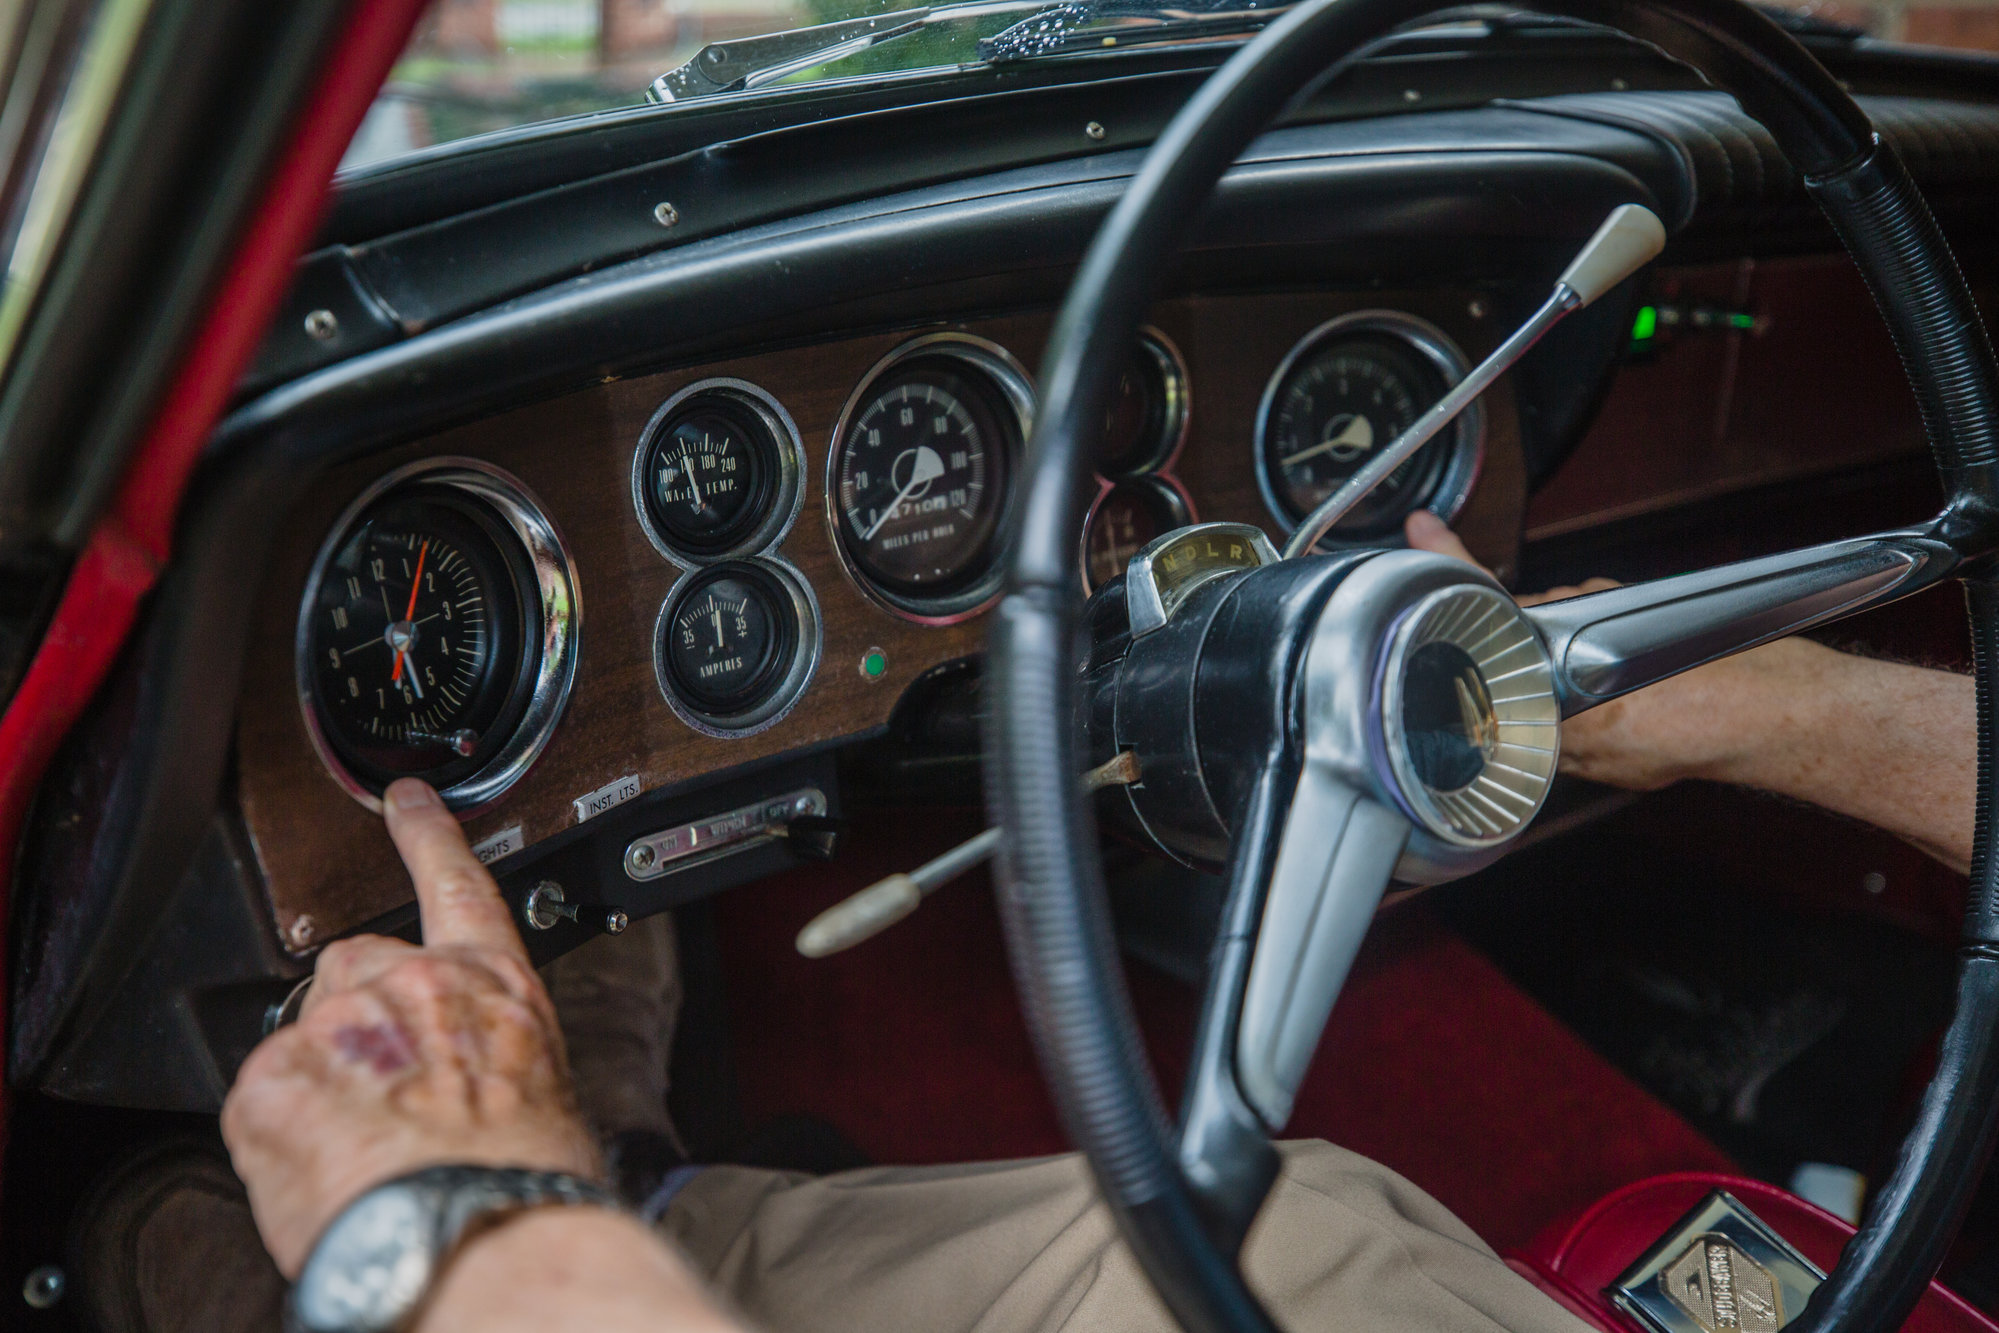 Don Cann shows the dashboard of his 1962 Studebaker Gran Turismo Hawk.